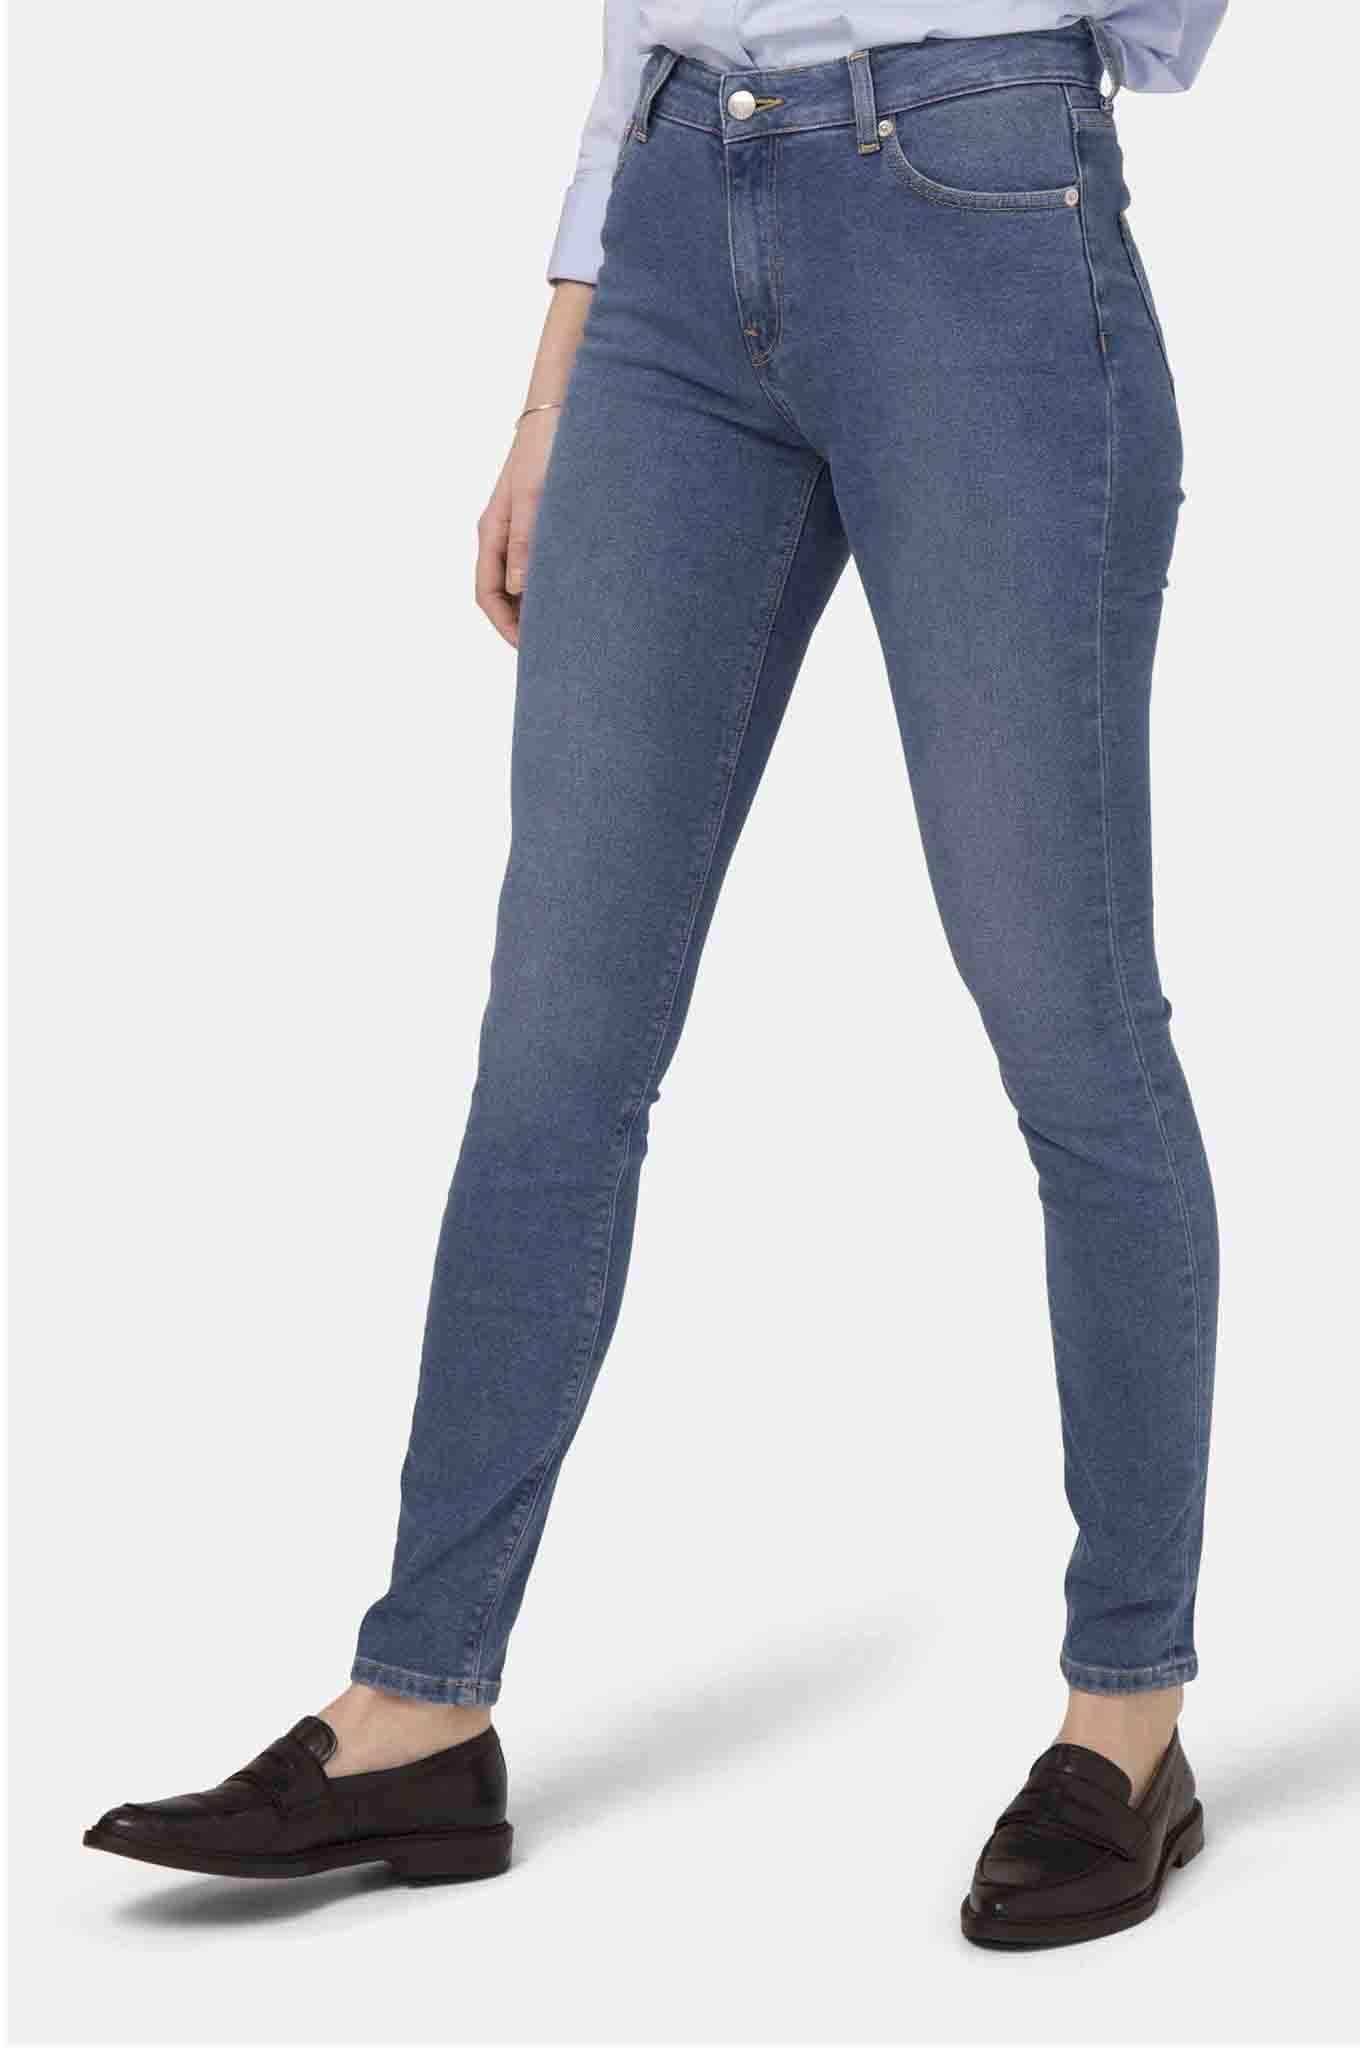 KOMODO pant HAZEN High Waist Jeans. Recycled Jeans and Organic Cotton. sustainable fashion ethical fashion